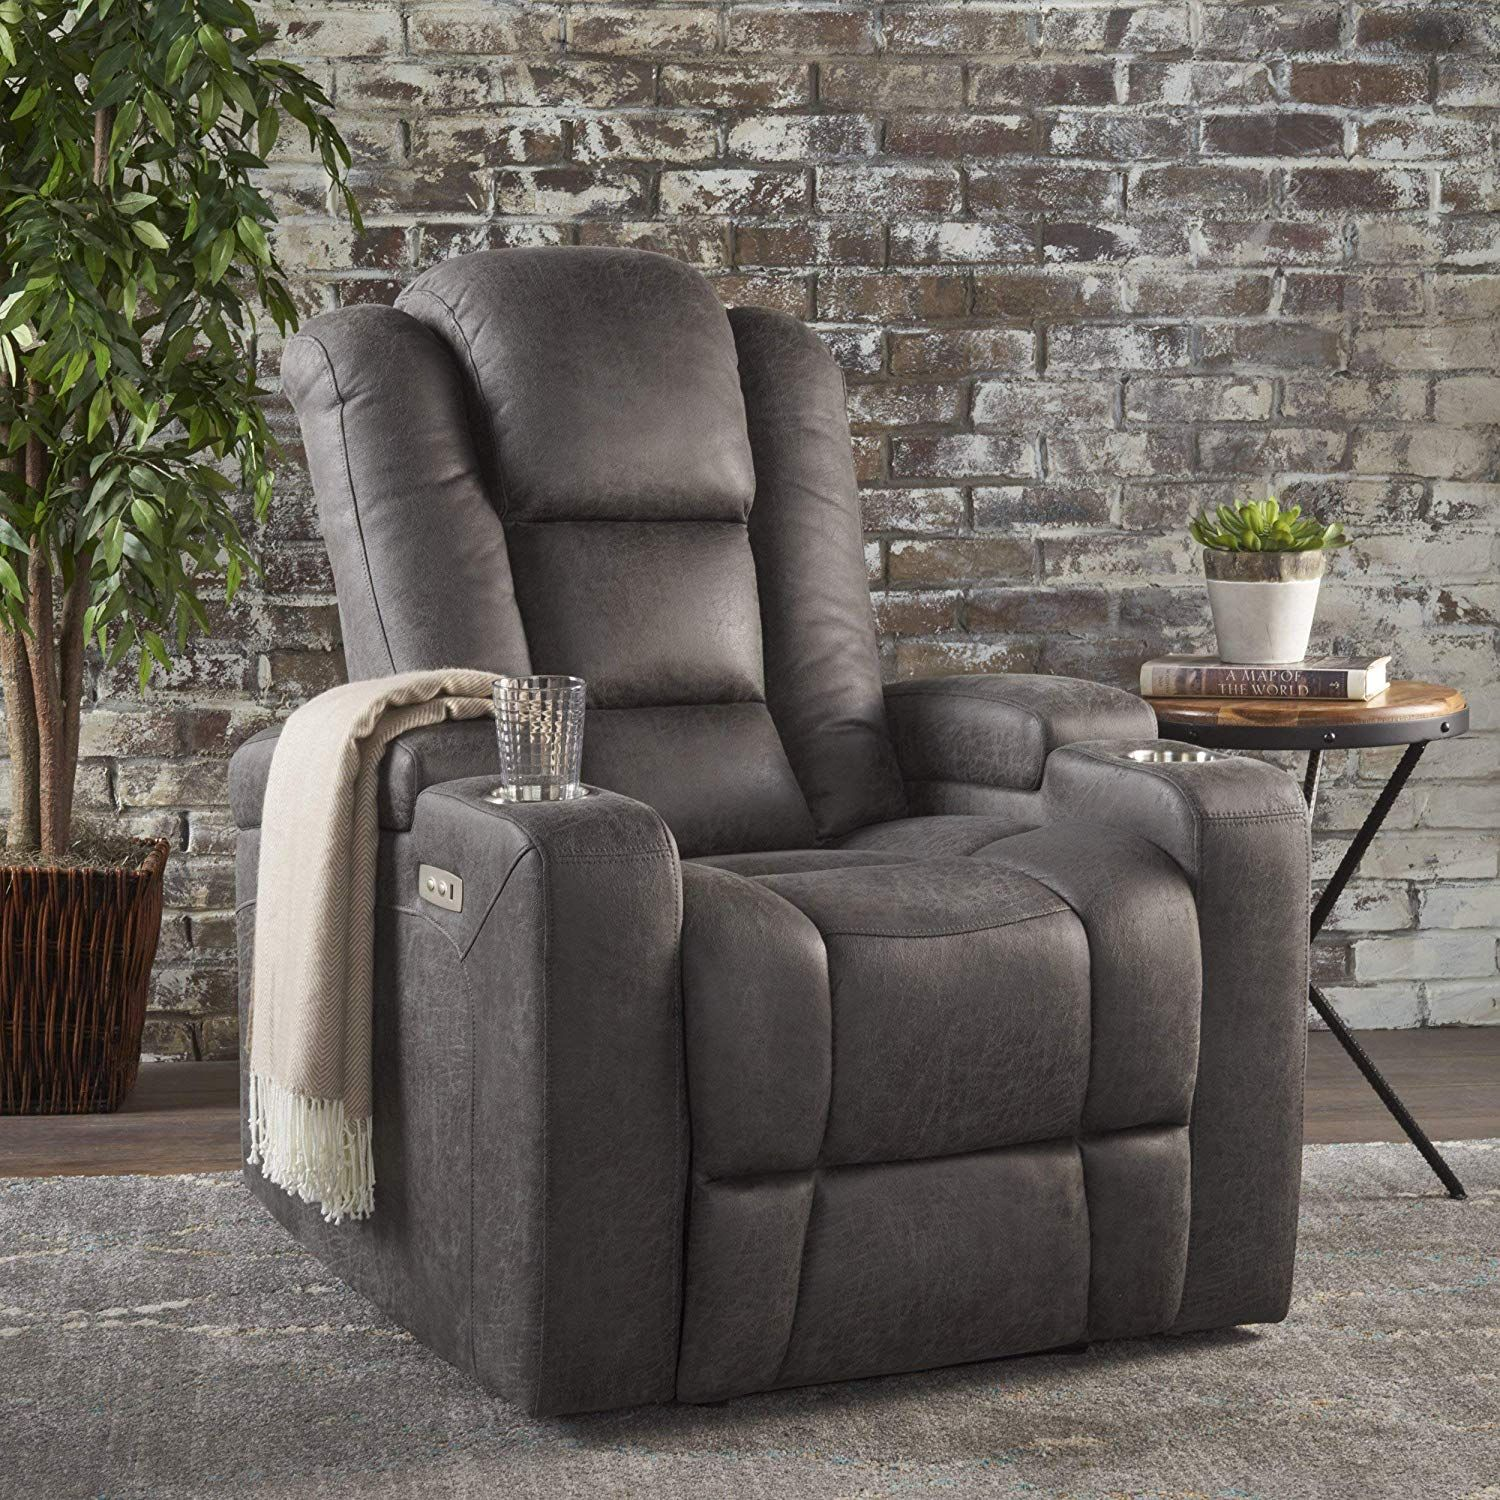 Admirable Best Recliners The Top 10 Reclining Chairs Of 2019 Creativecarmelina Interior Chair Design Creativecarmelinacom